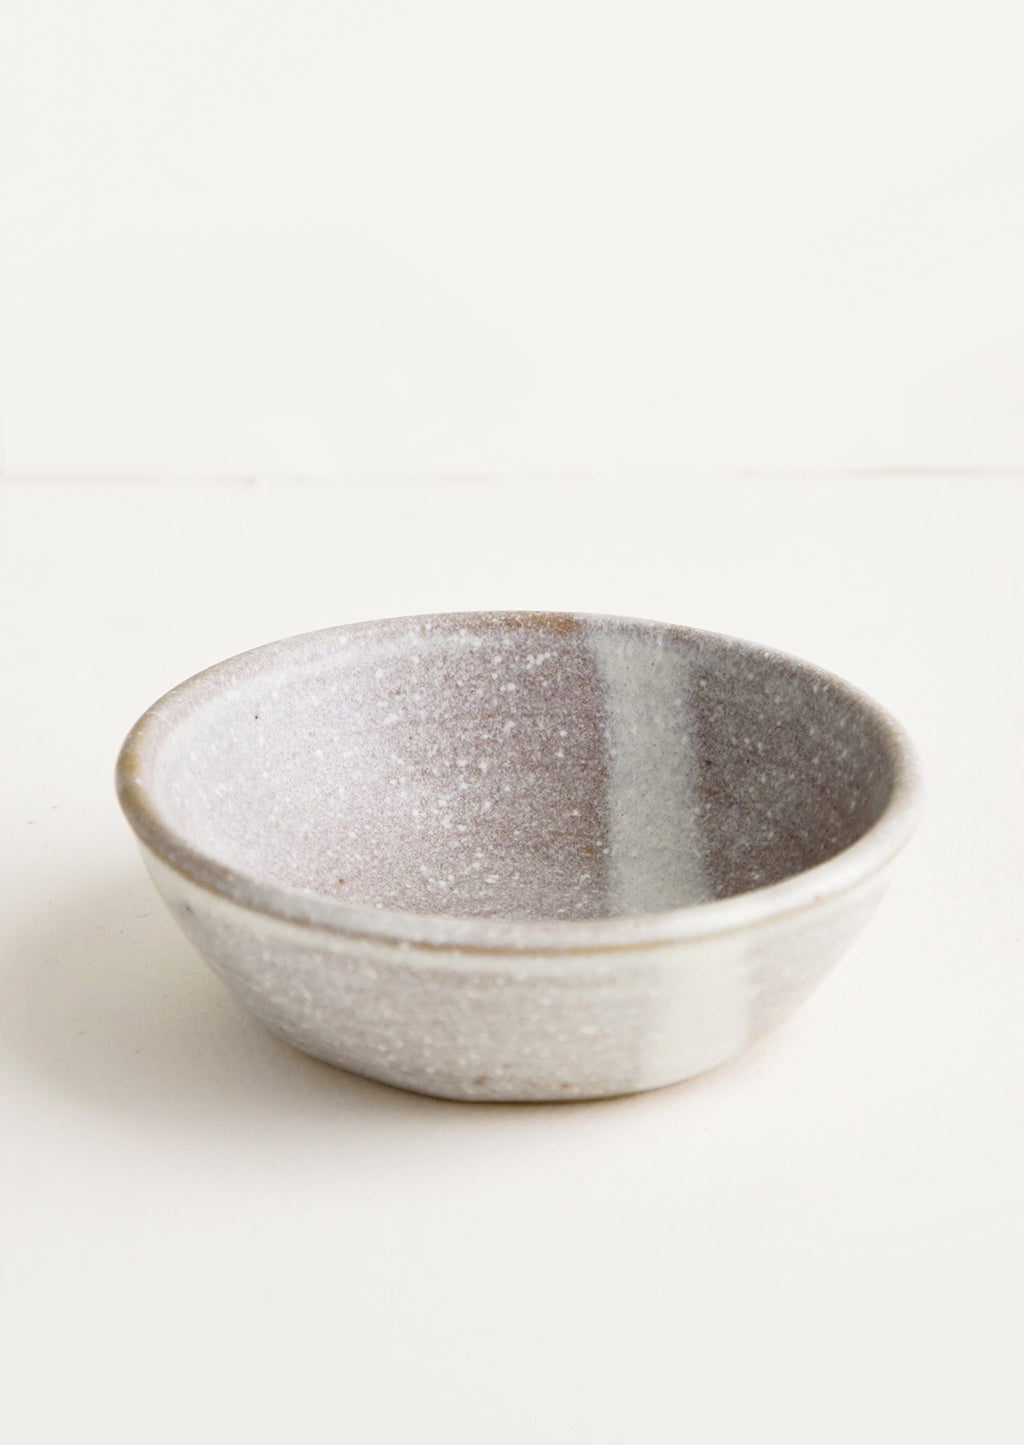 Pinch Bowl / Oat Speckle: Small, handmade ceramic pinch bowl in speckled light brown and white glaze